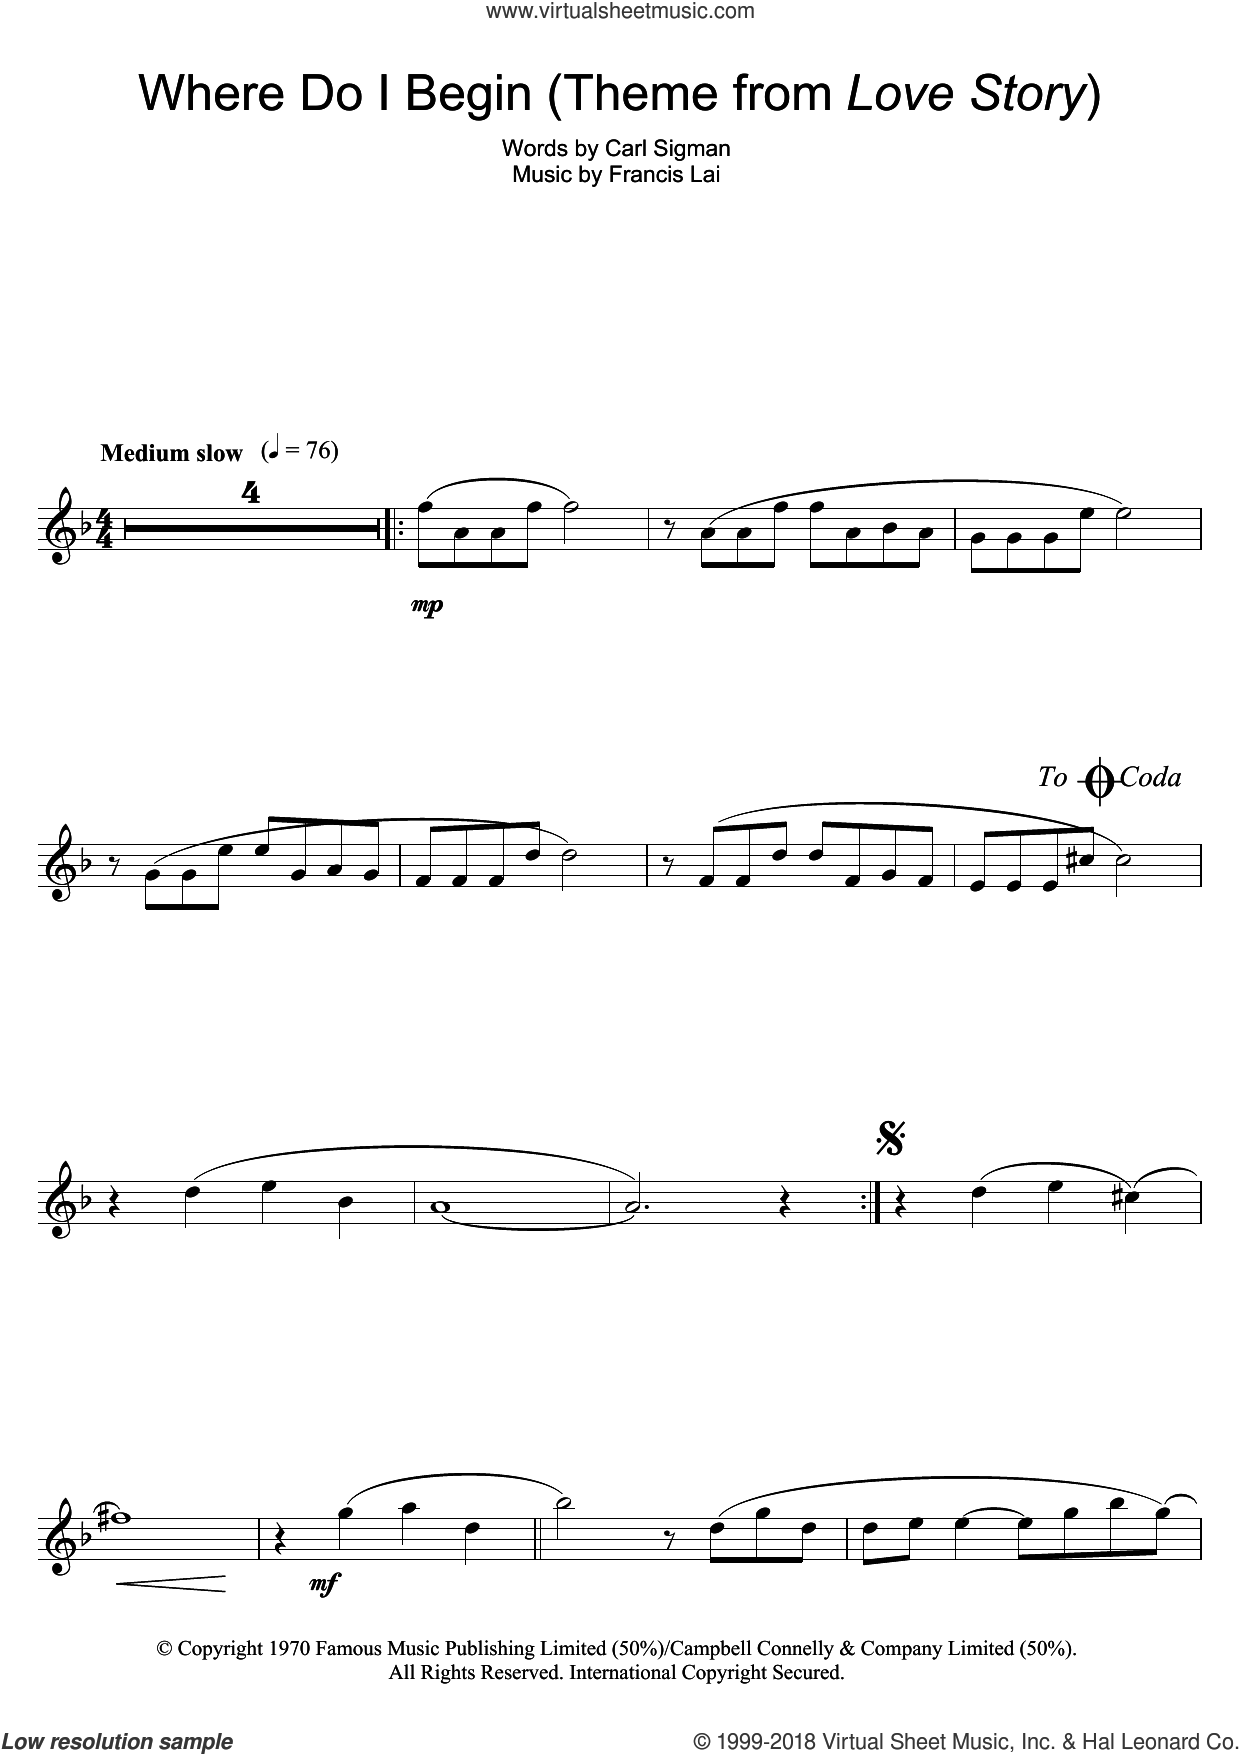 Where Do I Begin (theme from Love Story) sheet music for flute solo by Carl Sigman and Francis Lai. Score Image Preview.